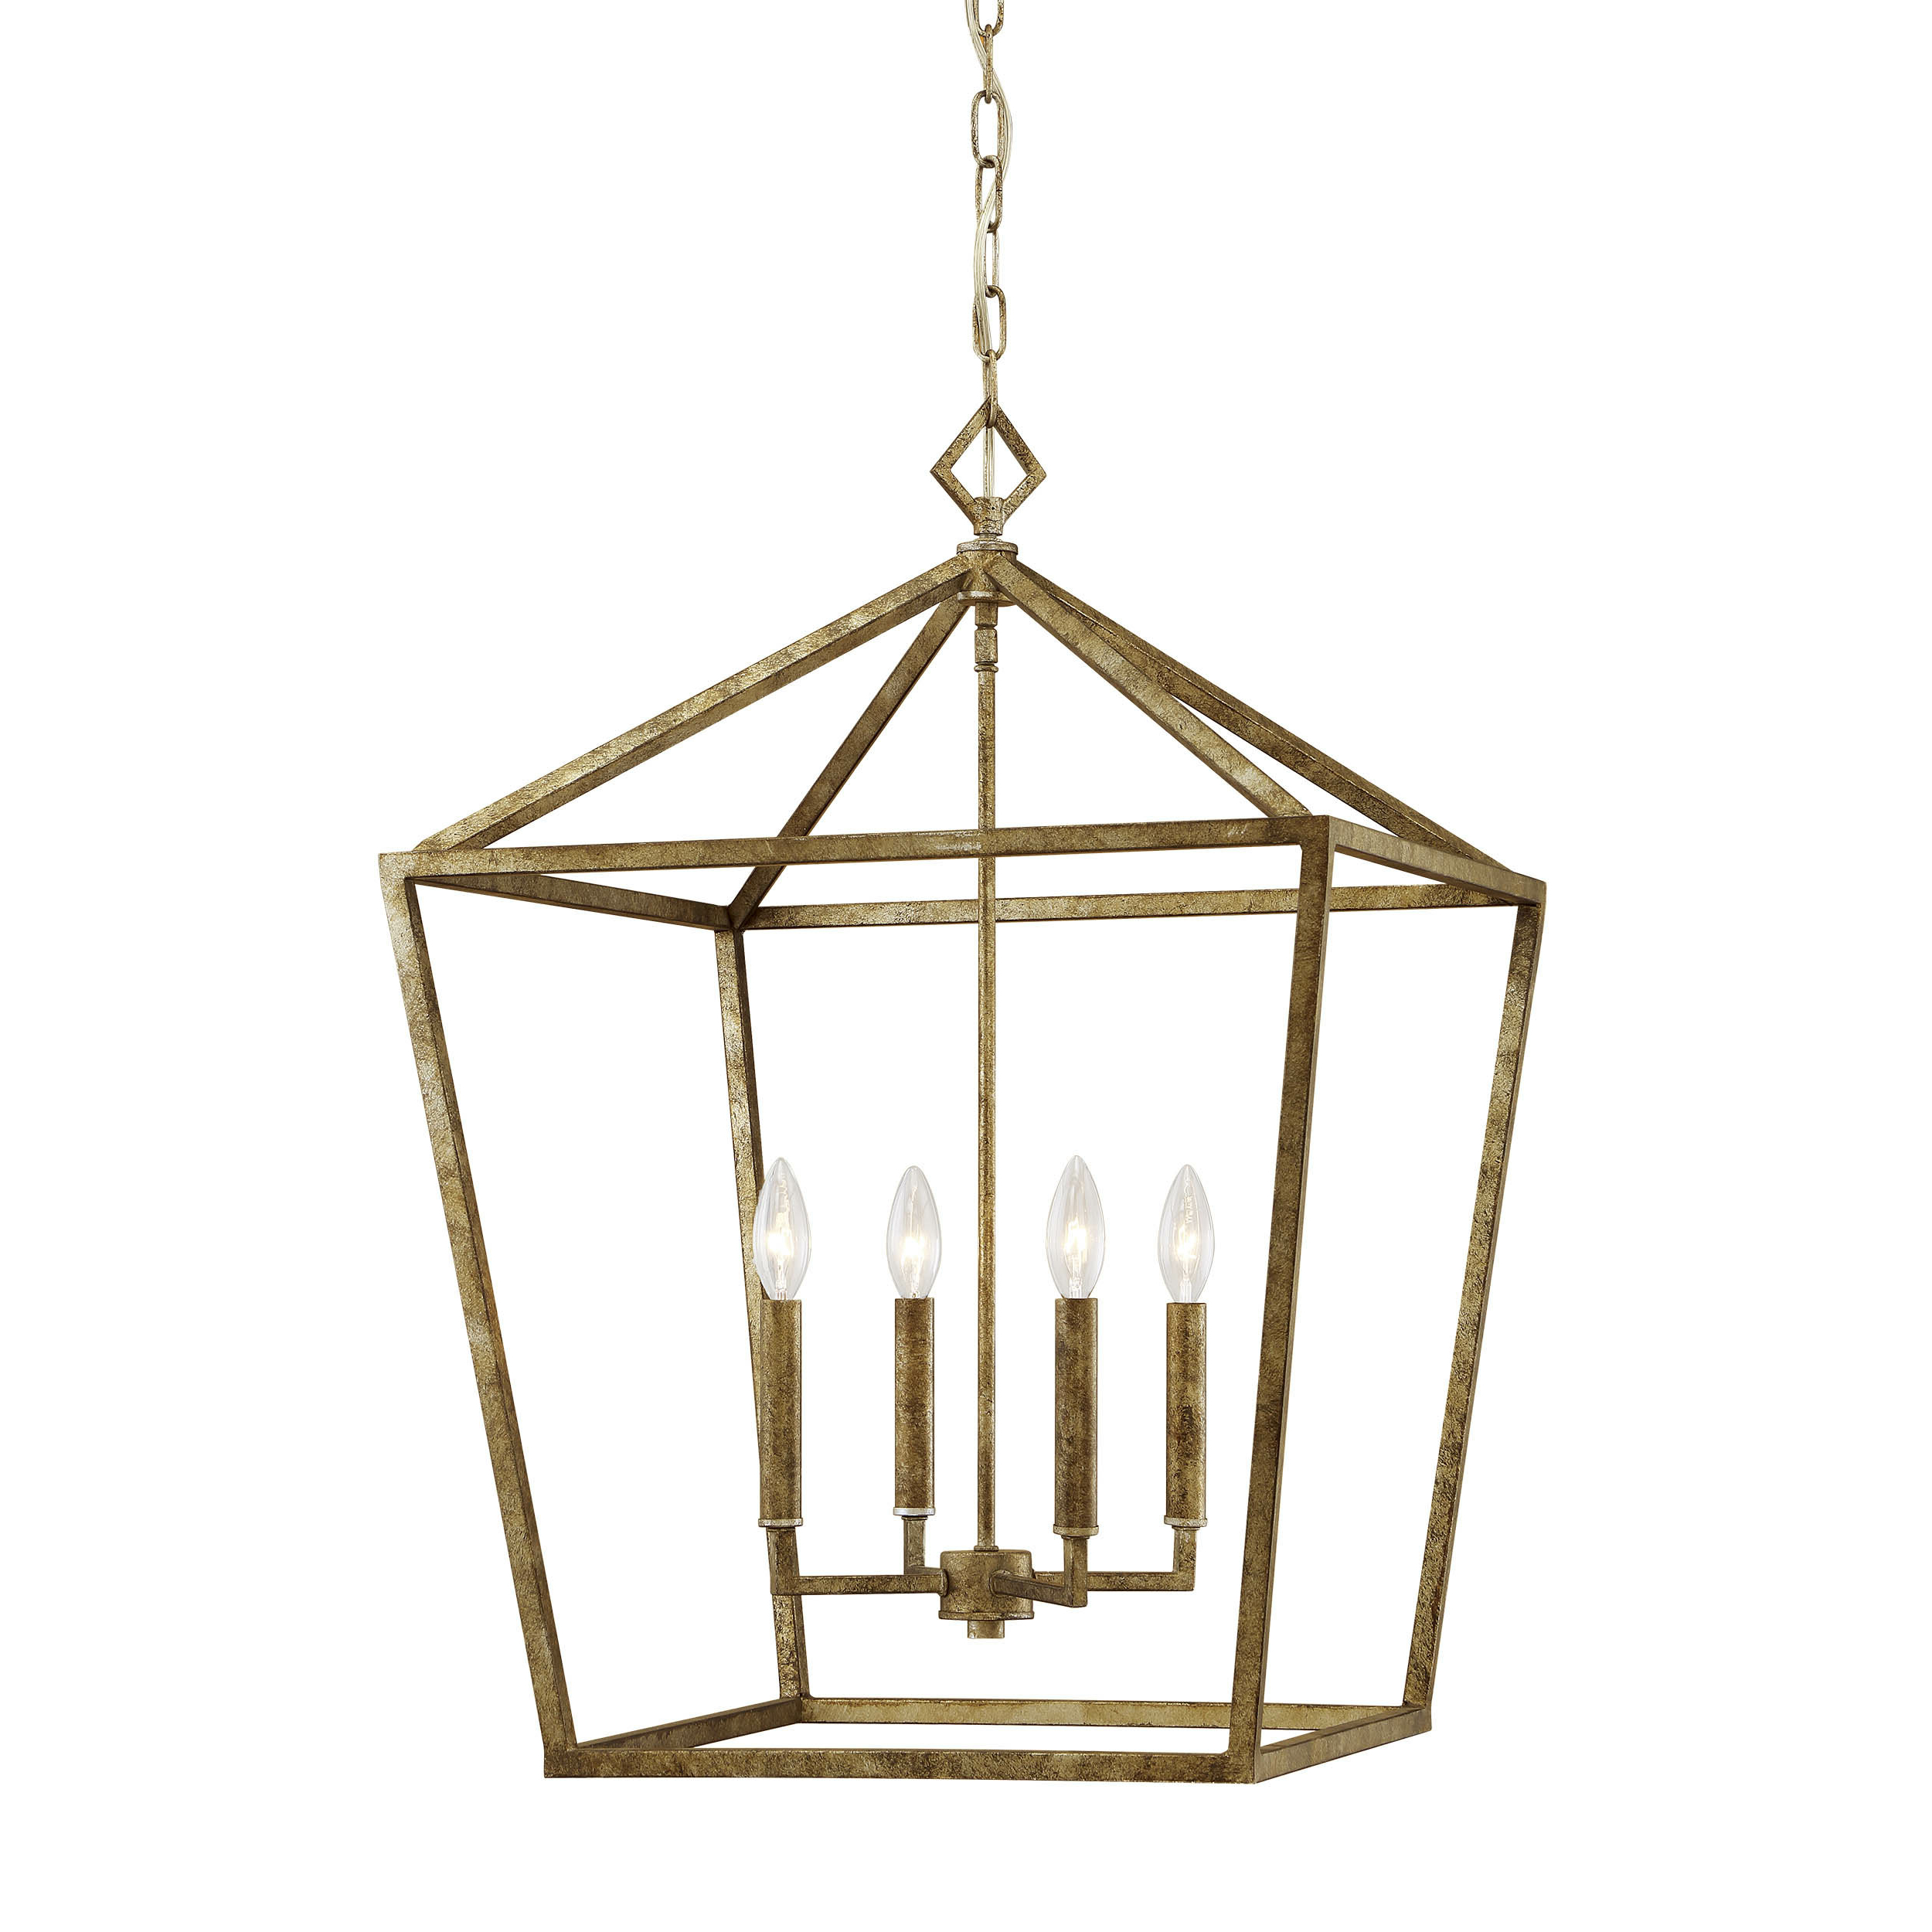 Varnum 4 Light Lantern Pendant Pertaining To Most Up To Date Isoline 2 Light Lantern Geometric Pendants (View 12 of 25)